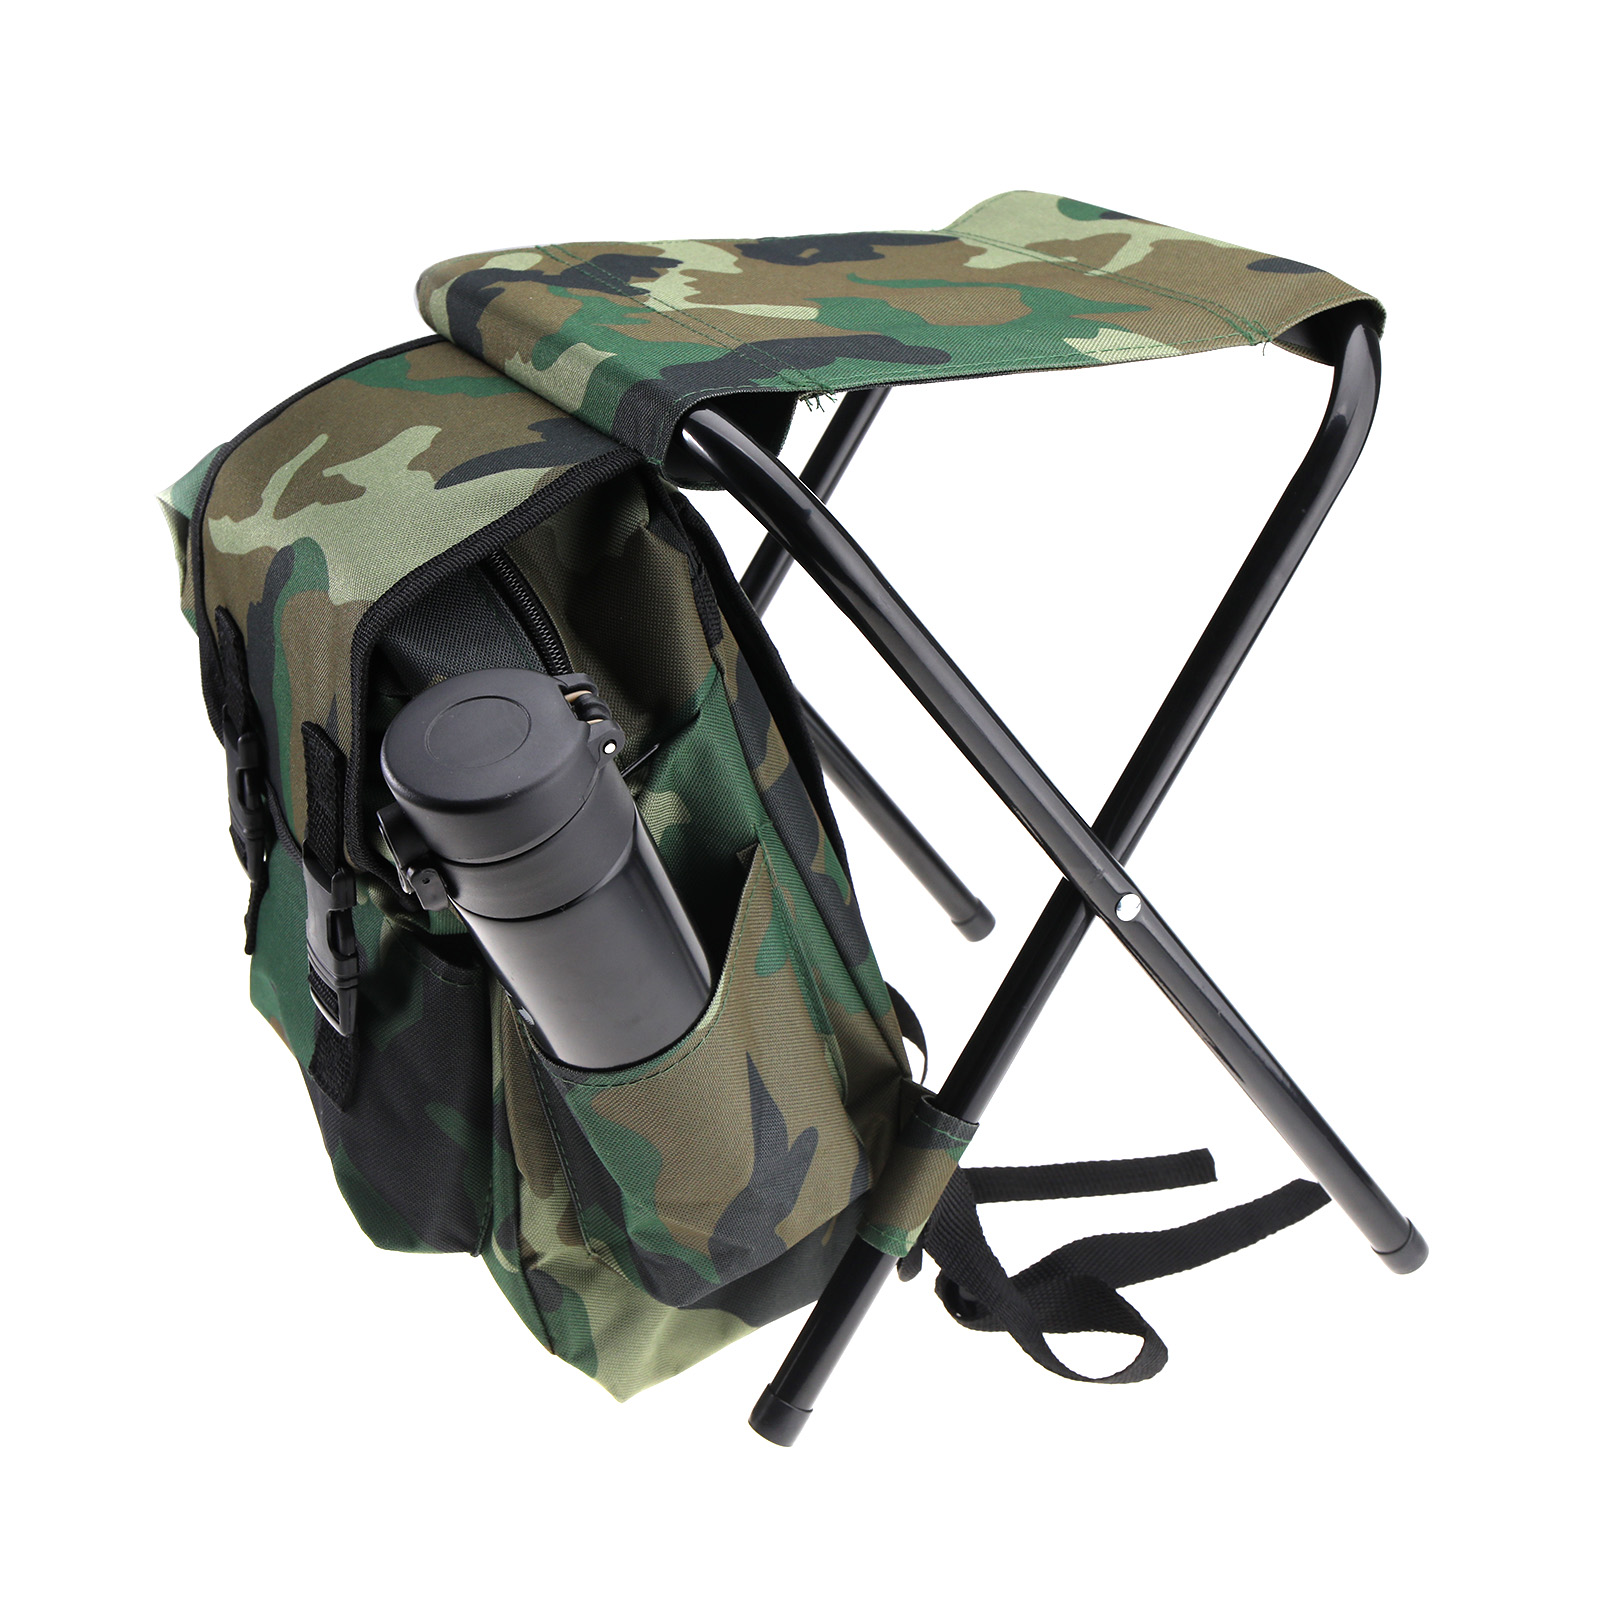 Hiking Chairs Folding Camping Chairs Portable Hiking Travel Fishing